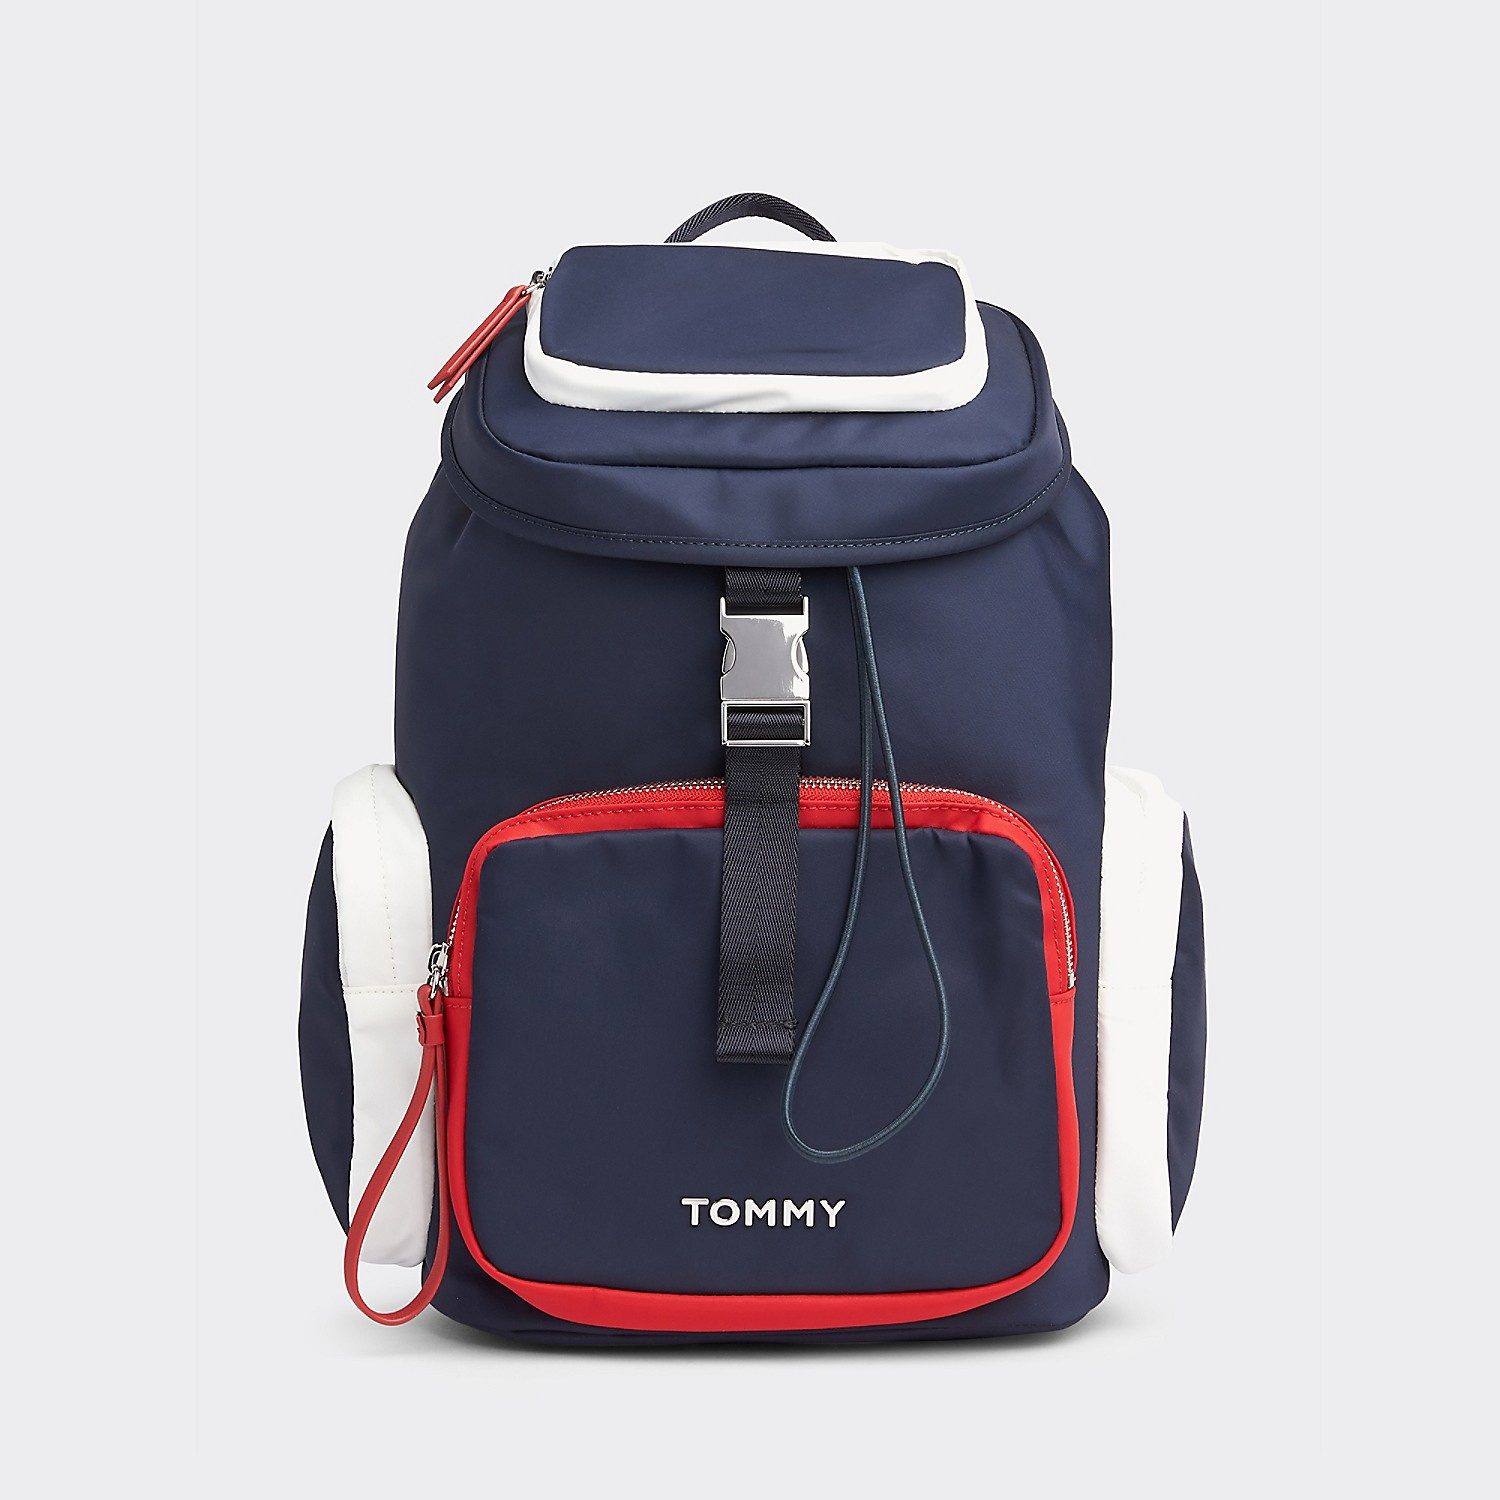 Tommy hilfiger Tommy Nylon Backpack